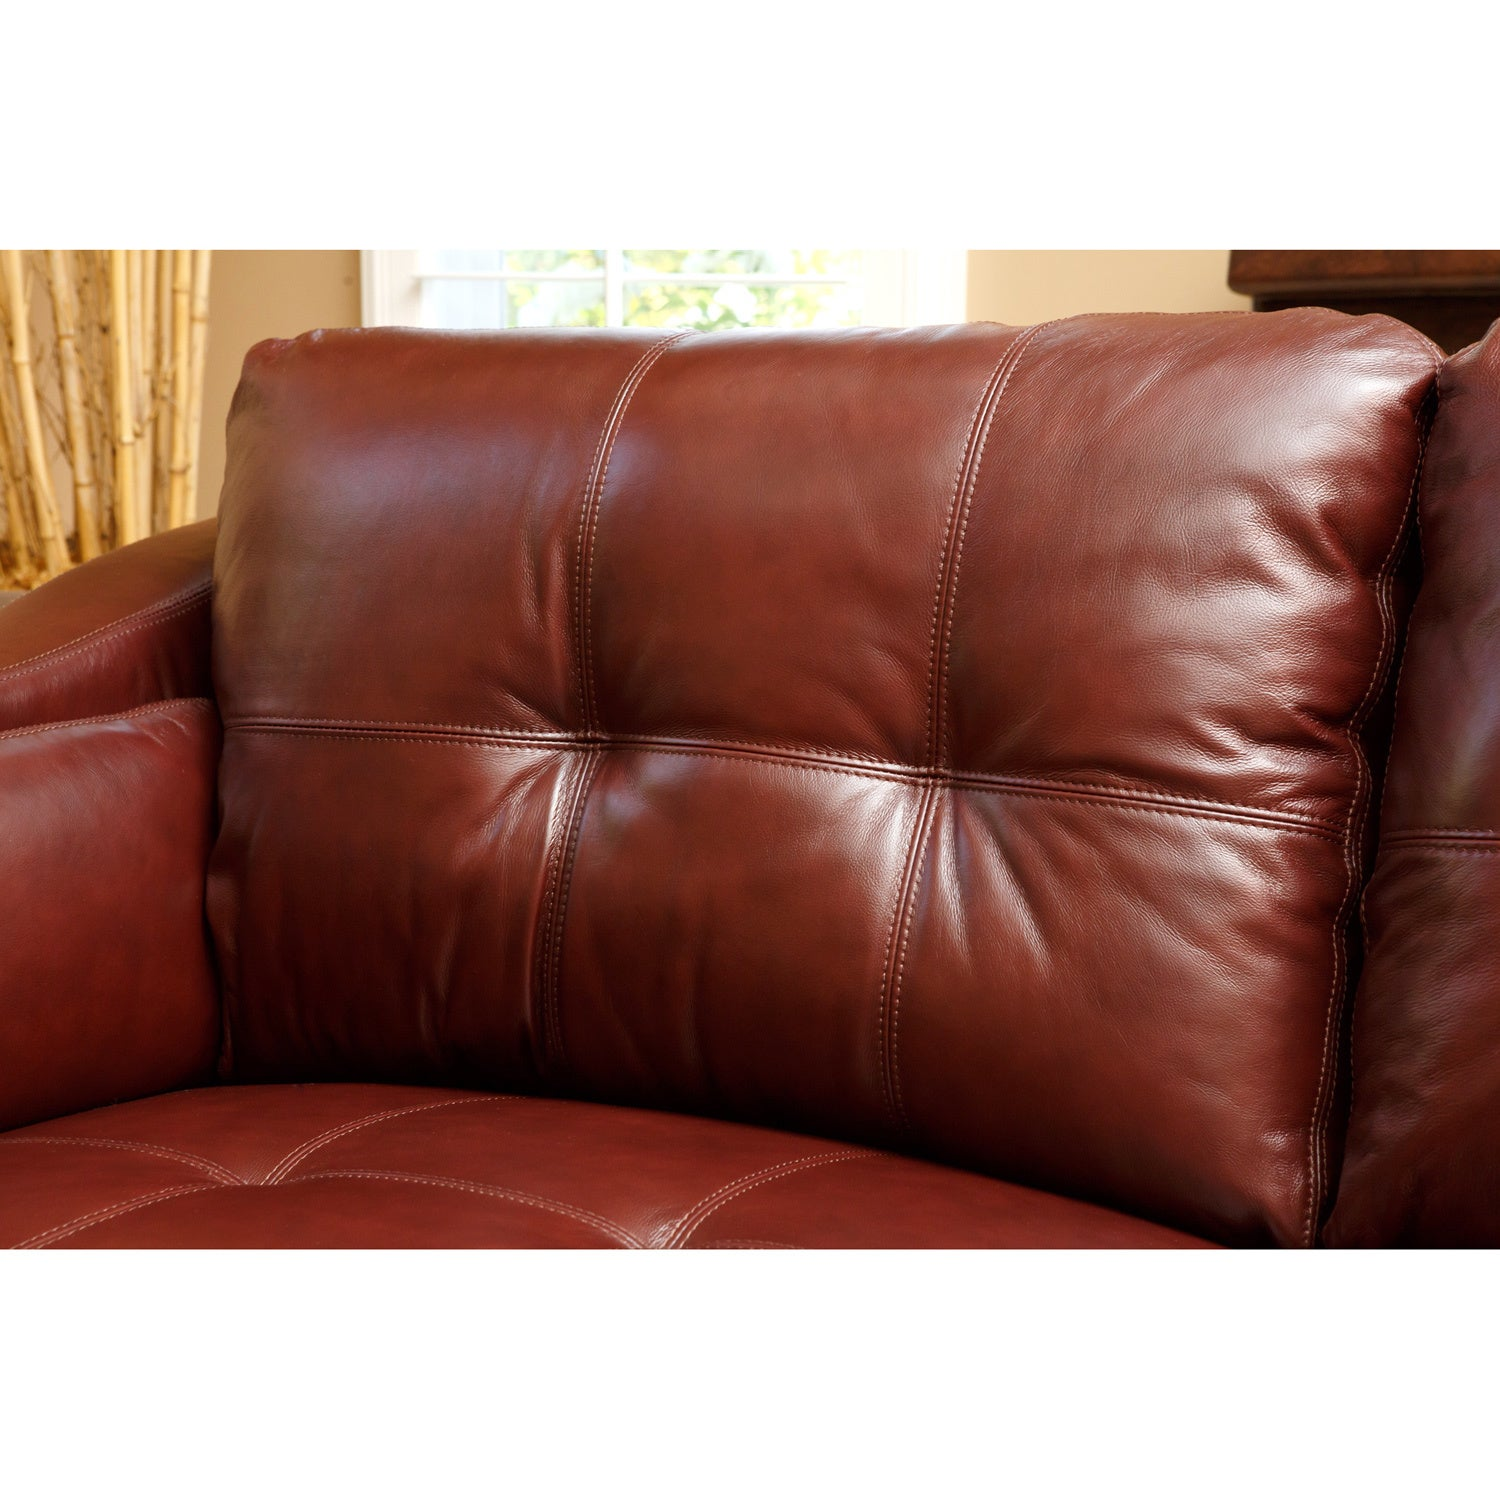 Abbyson Torrance Burgundy Top Grain Leather Sofa And Loveseat Set Free Shipping Today 6304838